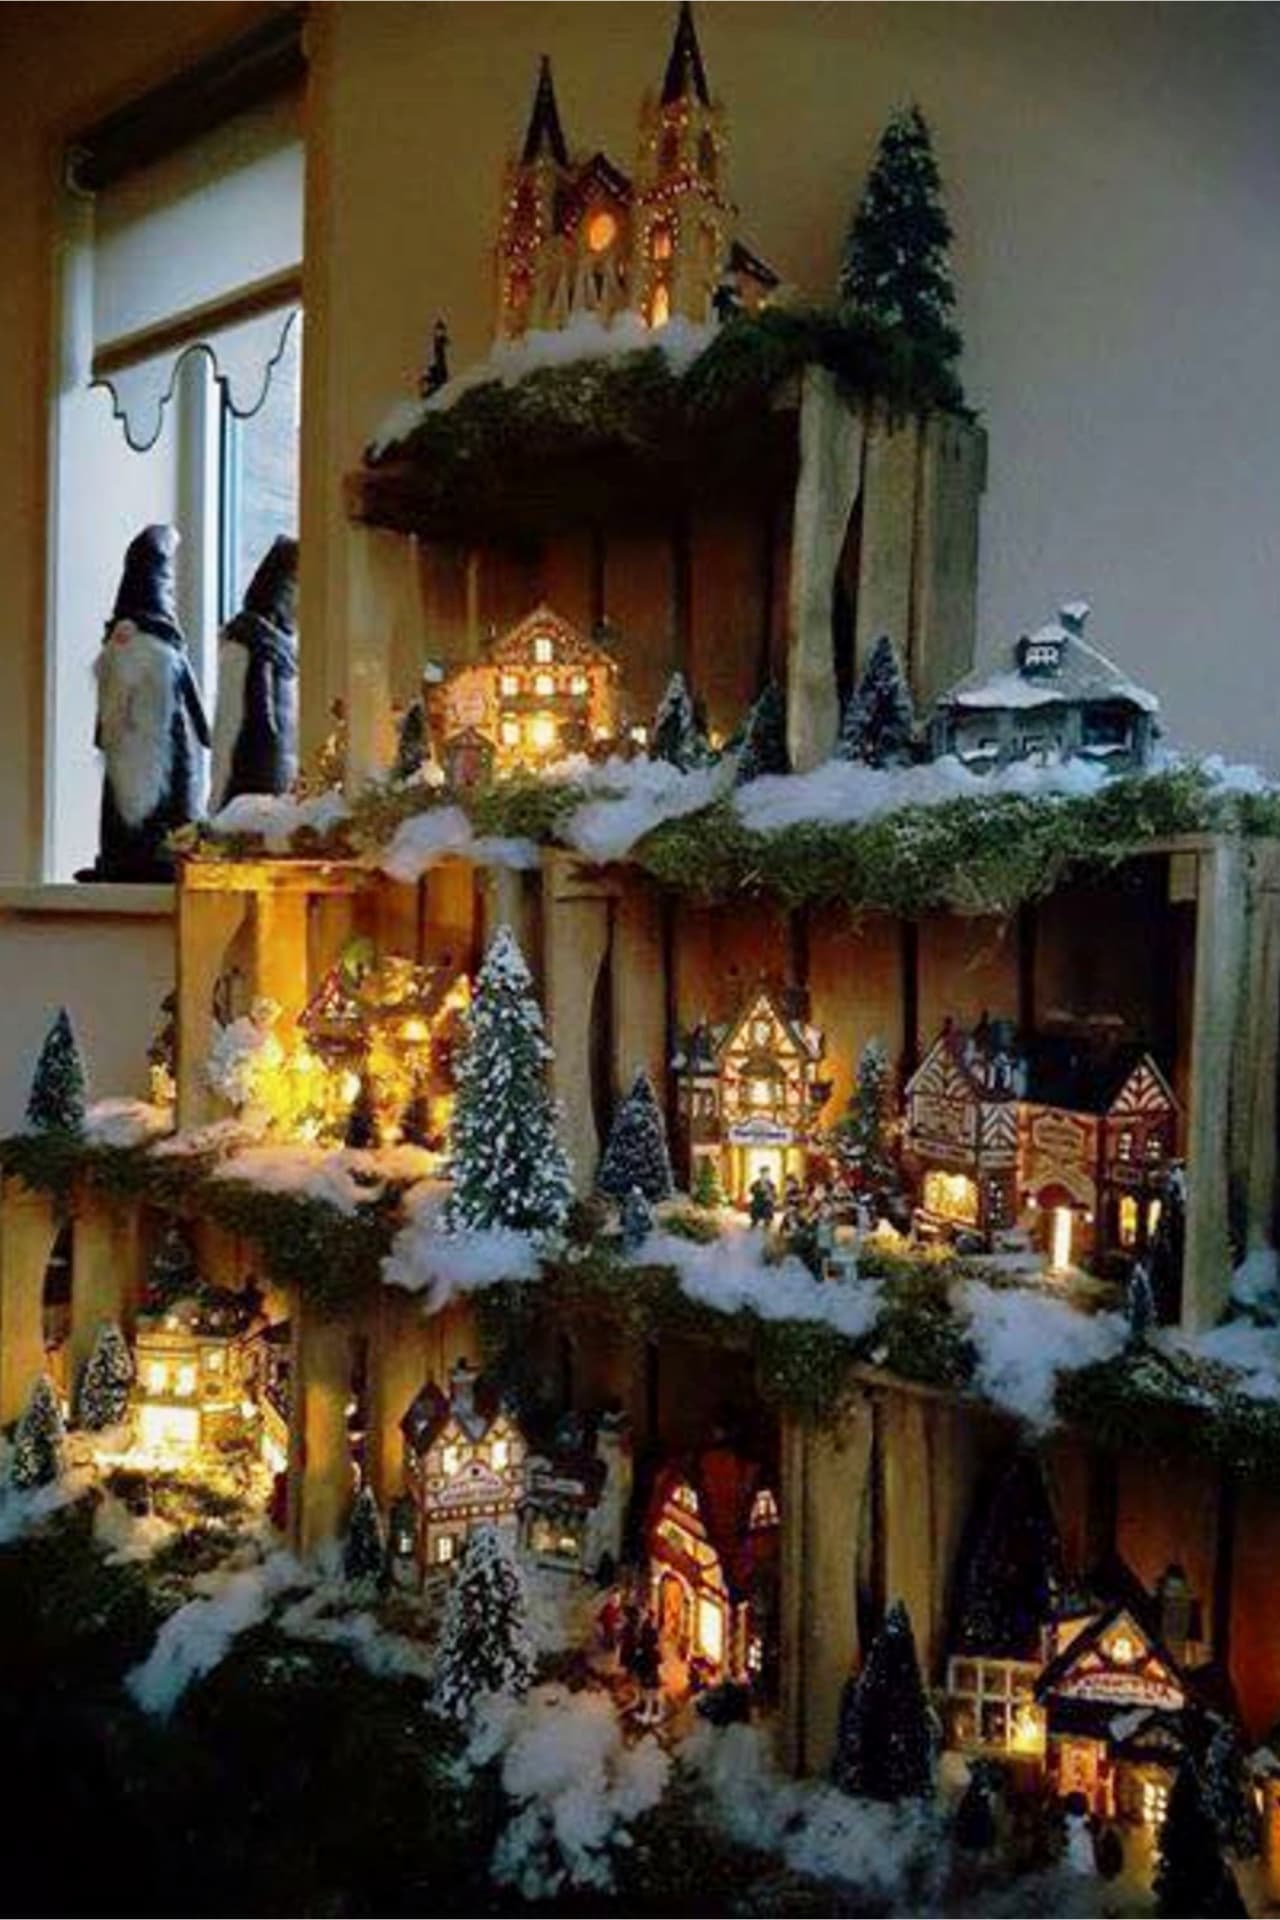 DIY Christmas Decorating Ideas - Christmas Village set up ideas - use wooden crates to display your Christmas village decorations for easy Christmas decor on a budget